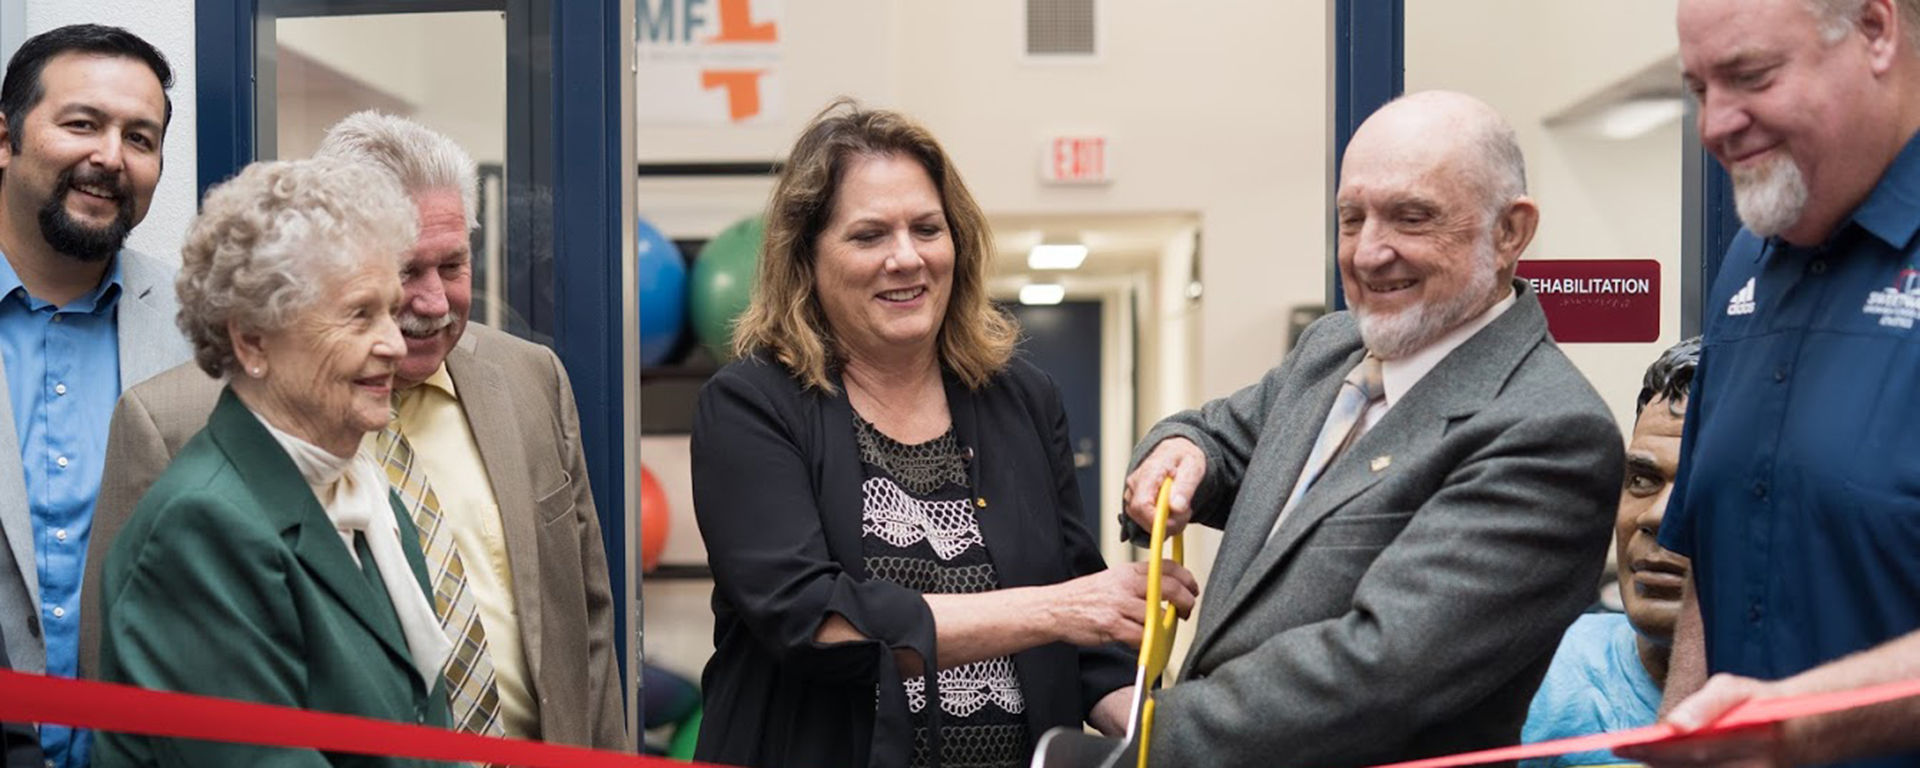 Sweetwater District Showcases New Sports Medicine and Wellness Center at Ribbon Cutting Ceremony